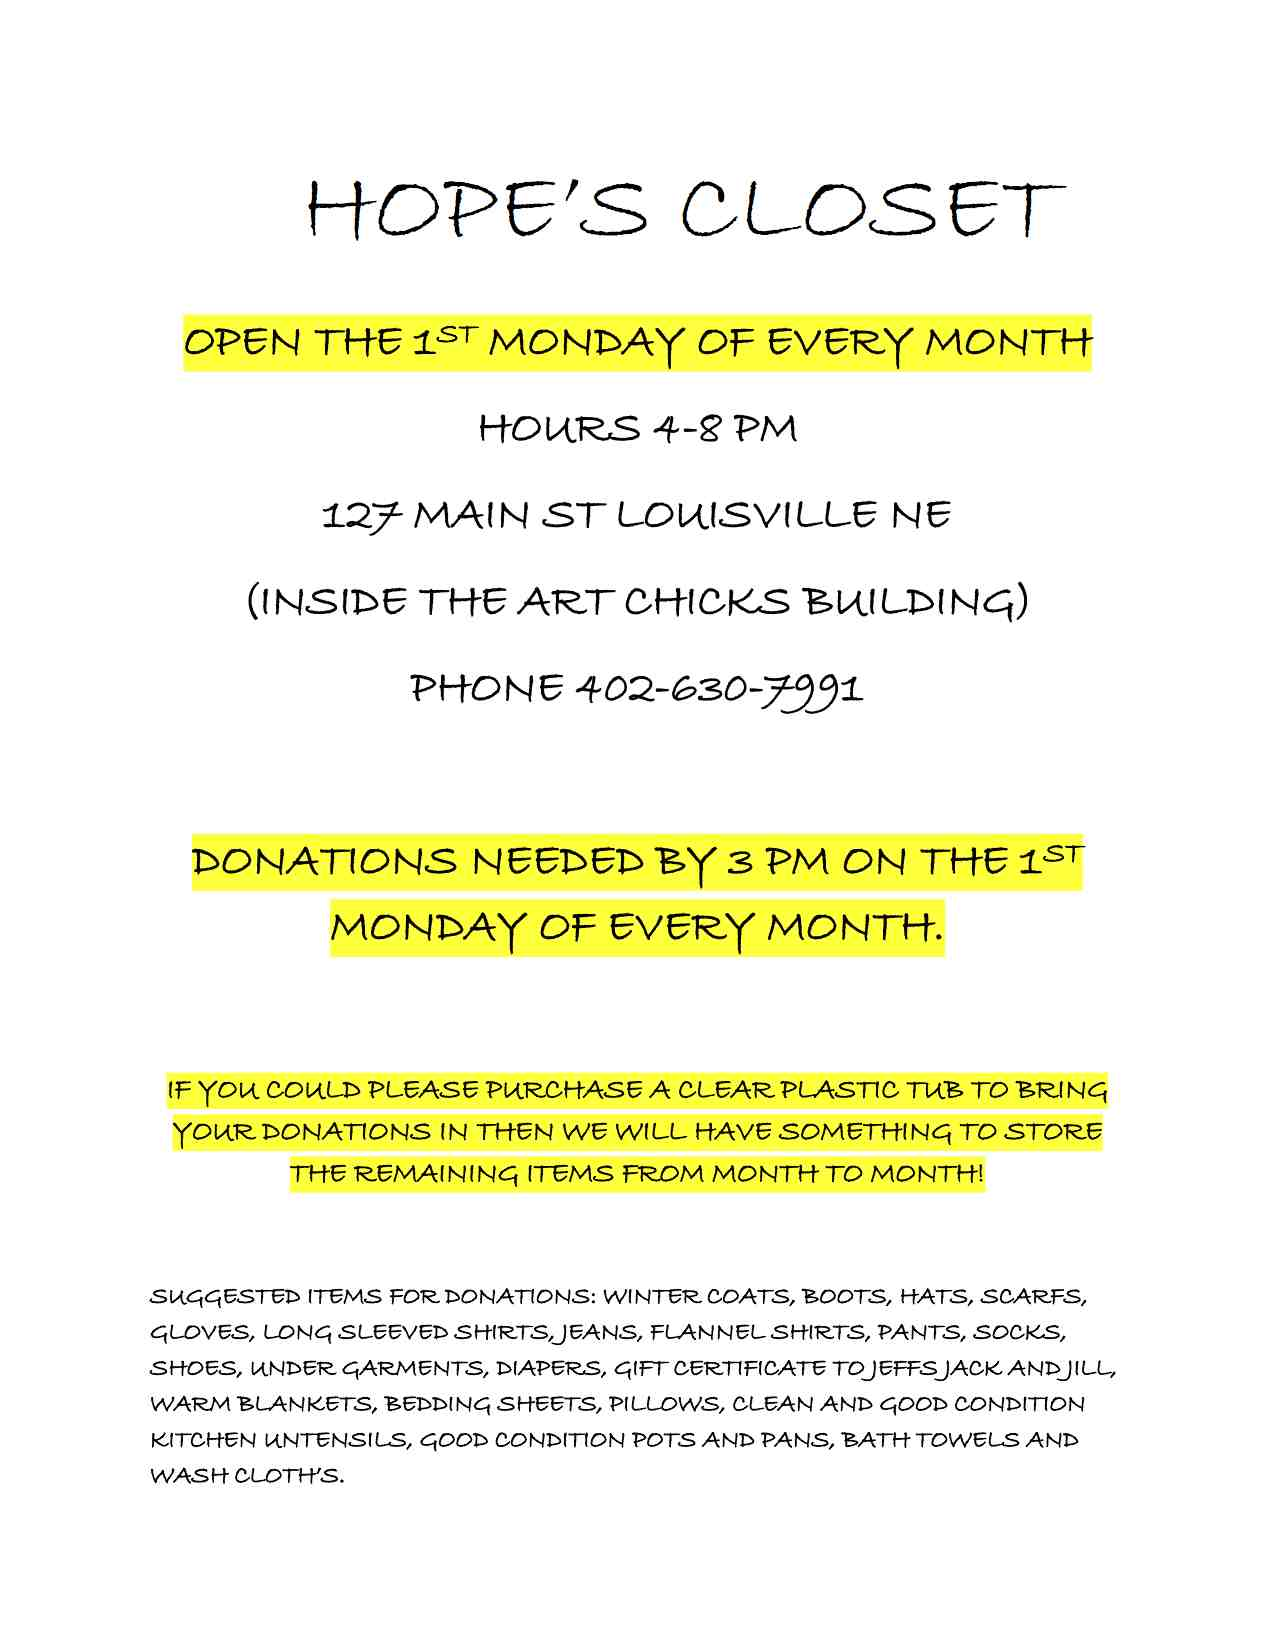 Flyer for Hopes Closet